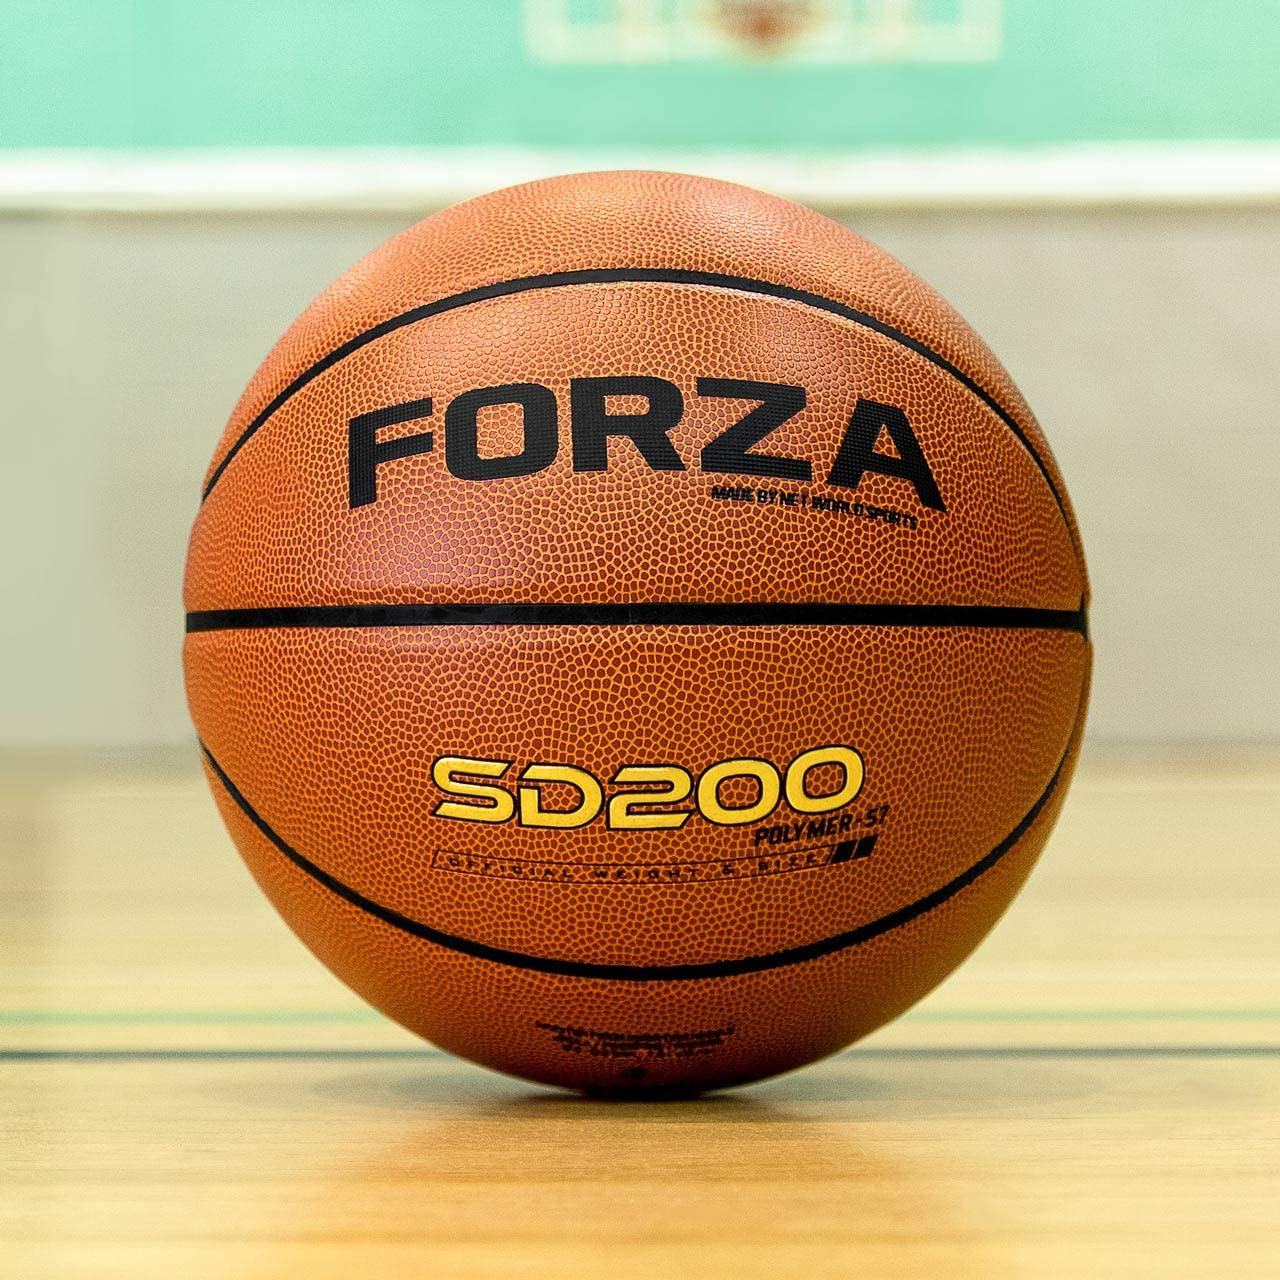 New York Mall FORZA SD200 Premium Practice Basketball Size 7 Indoo Outdoor Free shipping on posting reviews